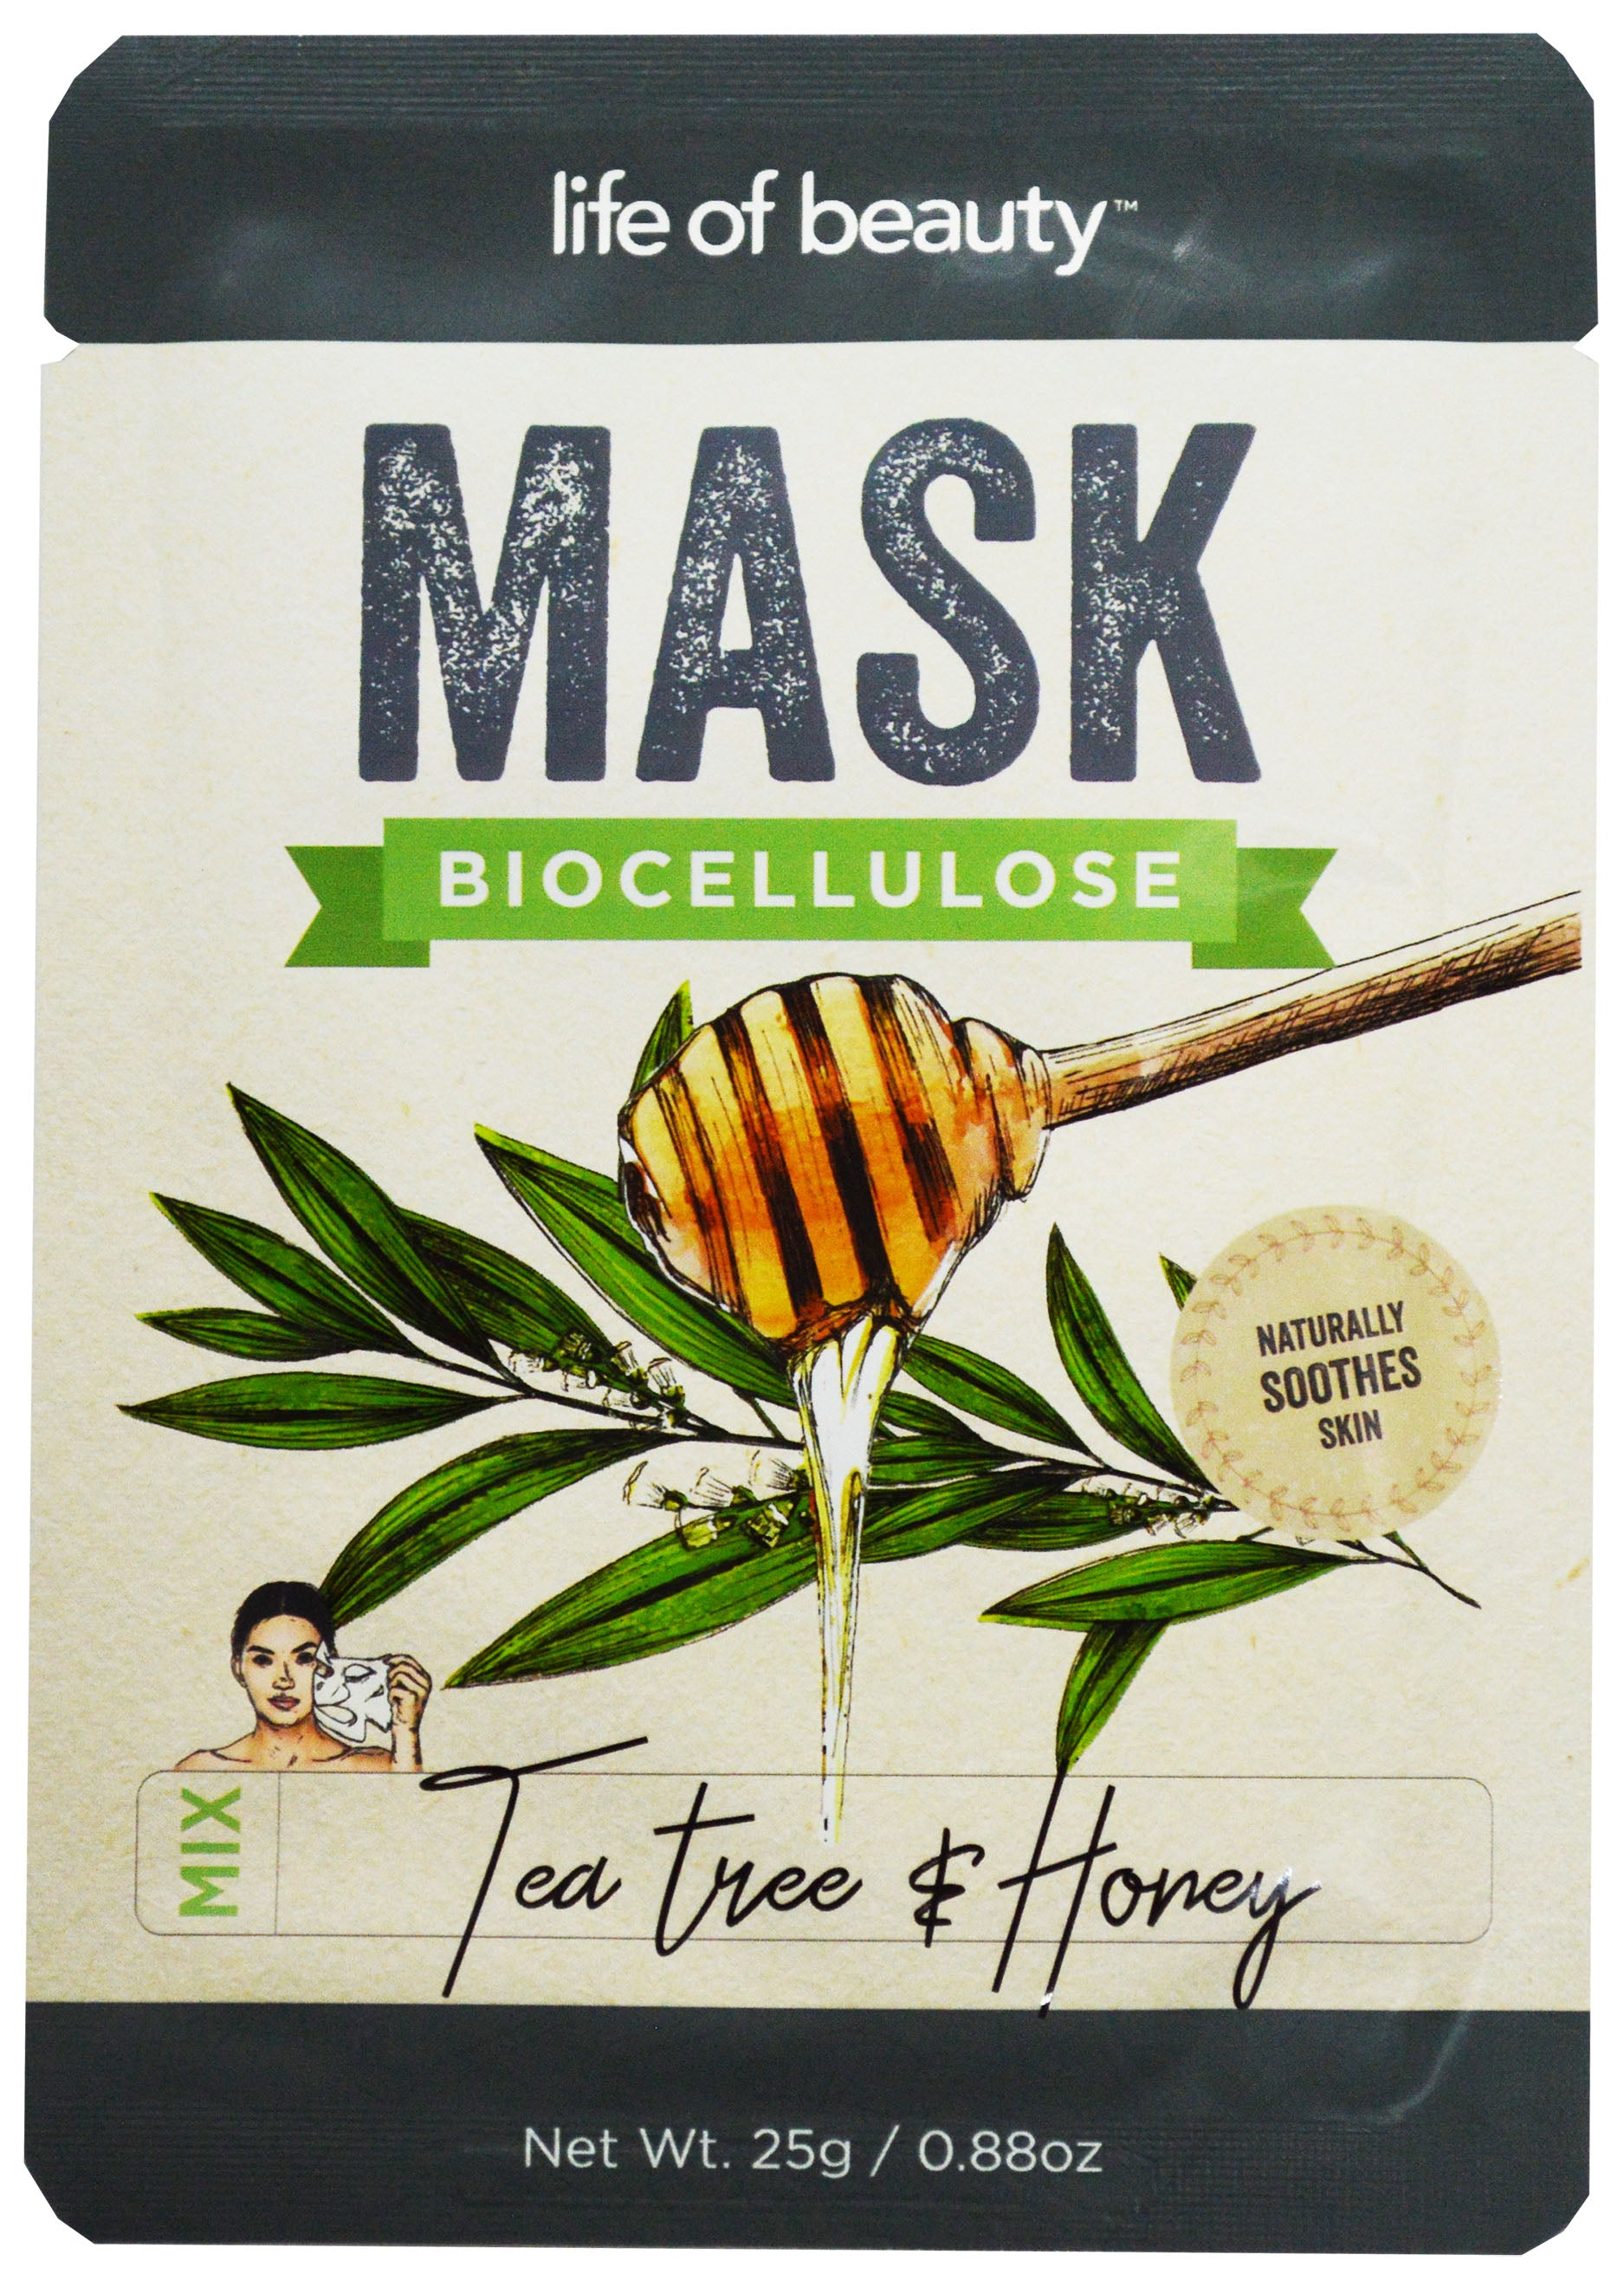 Tea Tree & Honey Face Mask